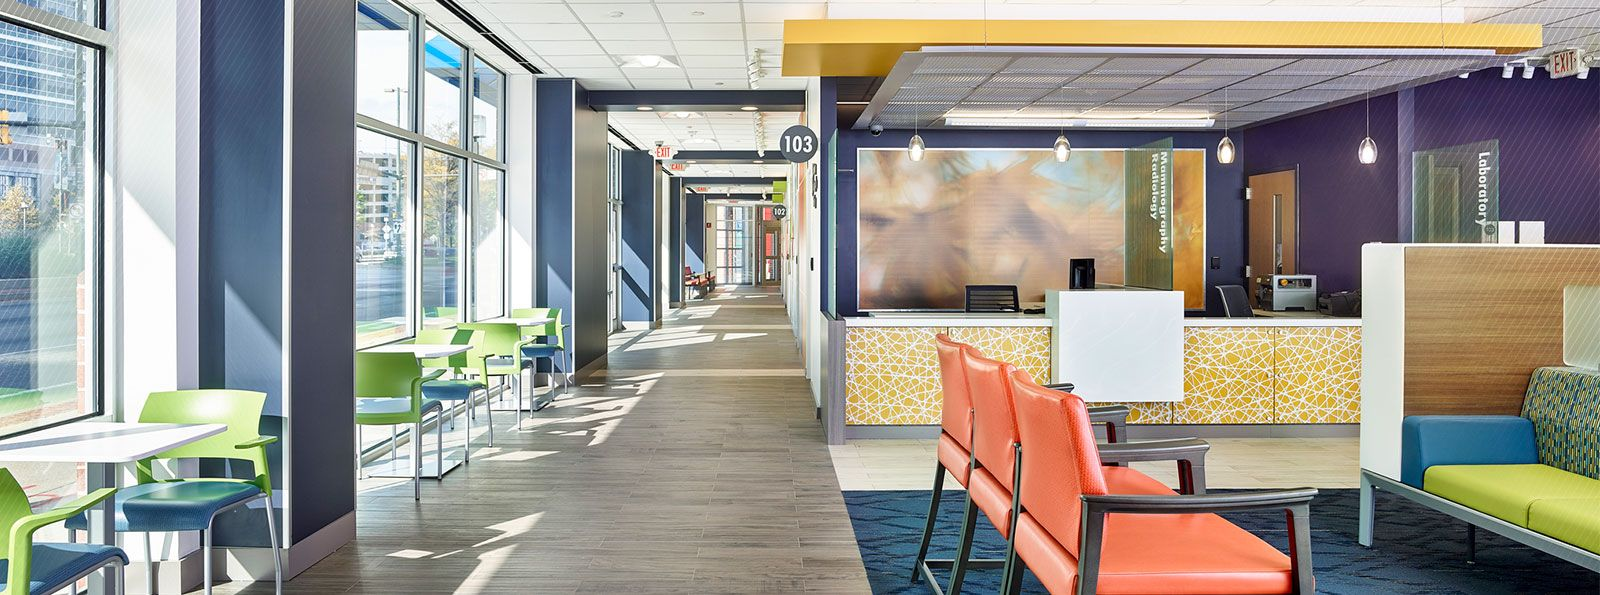 Harbor Medical Office Building | Array Architects